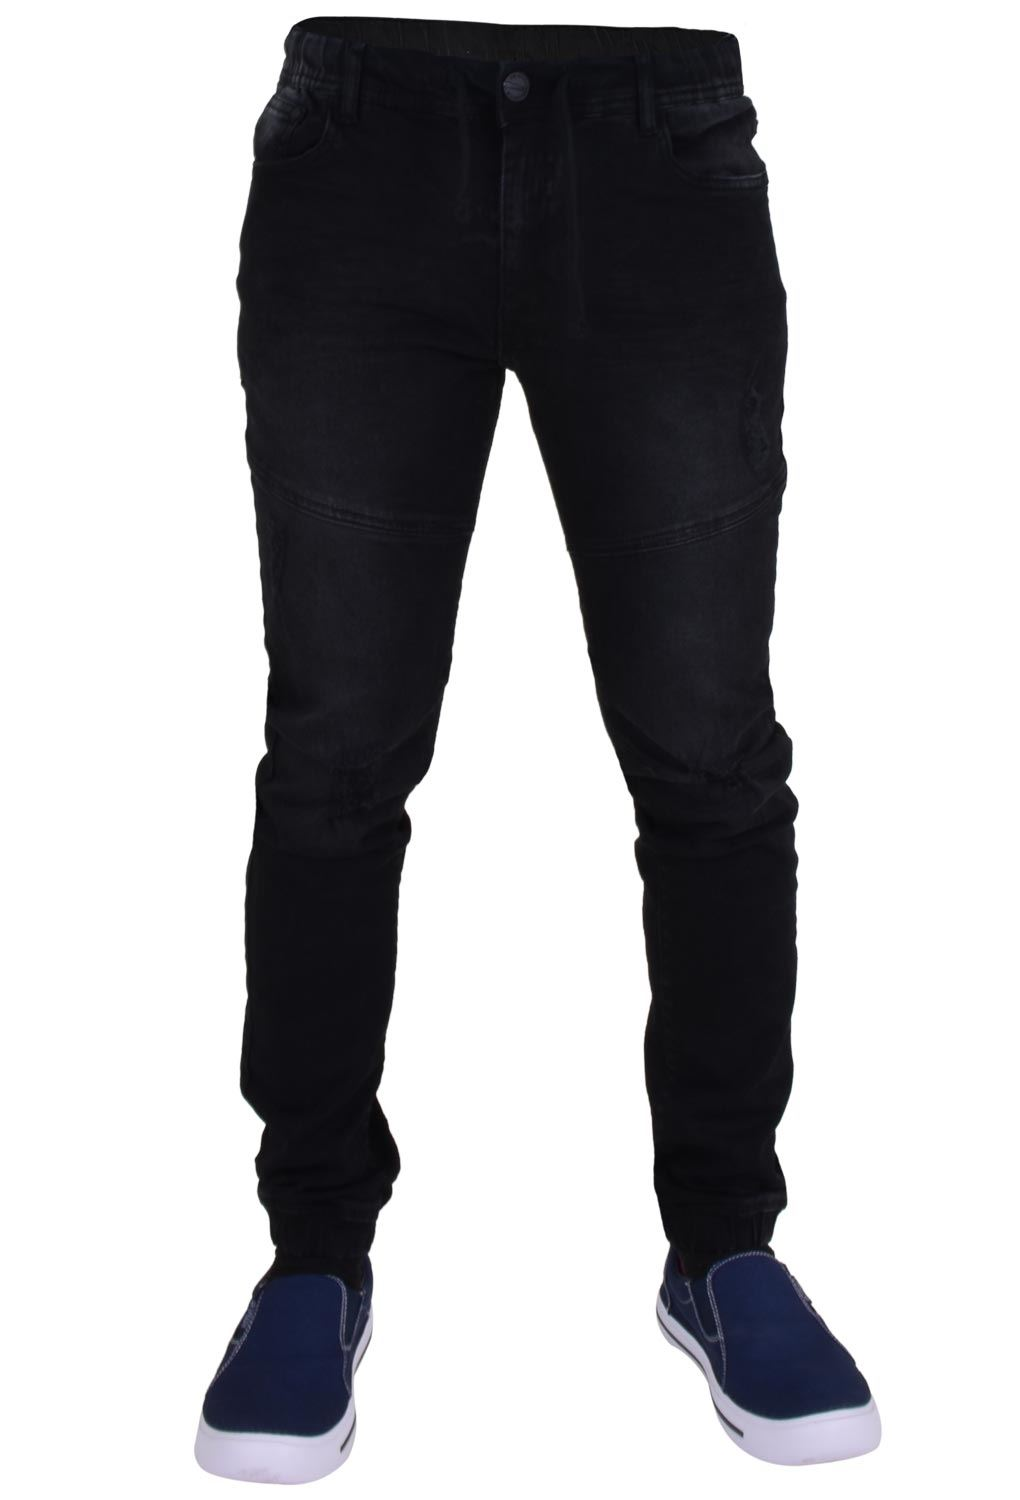 BNWT MENS TIGHT FIT STRETCH JEANS PANTS IN 4 COLOURS SIZES 28 TO 40 RRP £24.99